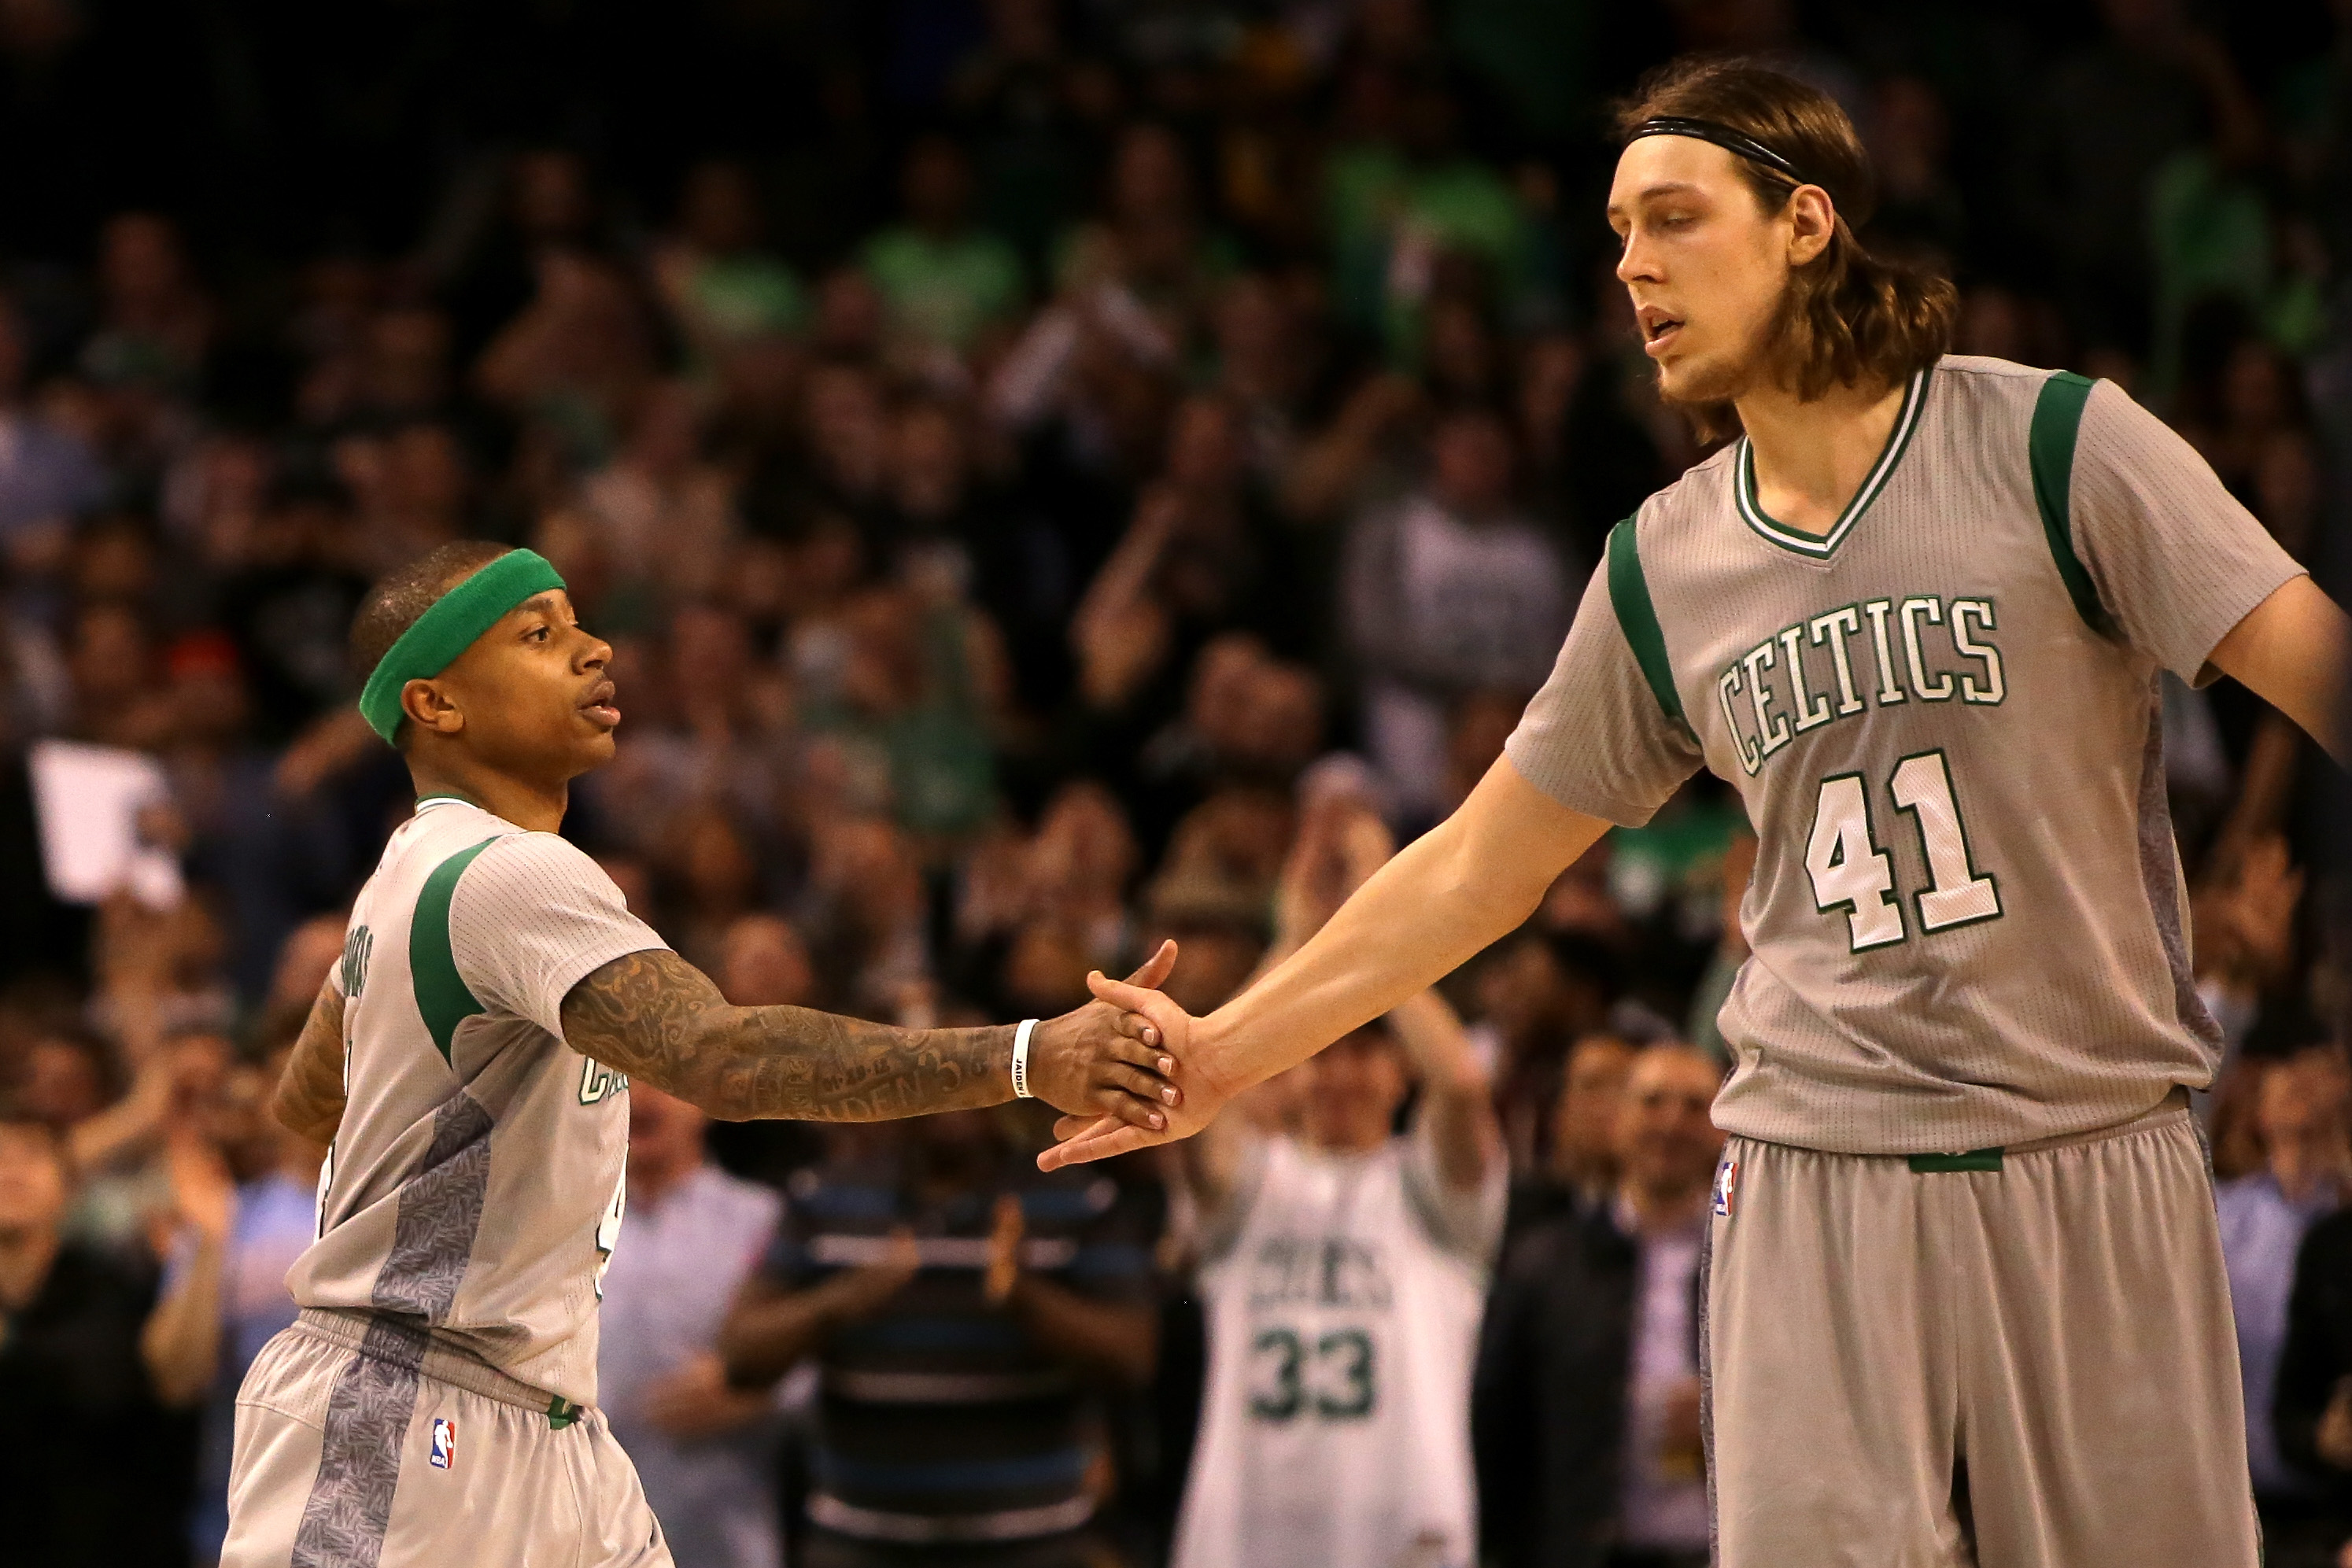 BOSTON, MA - APRIL 13: Isaiah Thomas #4 and Kelly Olynyk #41 of the Boston Celtics celebrate after a play in the fourth quarter against the Miami Heat at TD Garden on April 13, 2016 in Boston, Massachusetts. (Photo by Mike Lawrie/Getty Images)